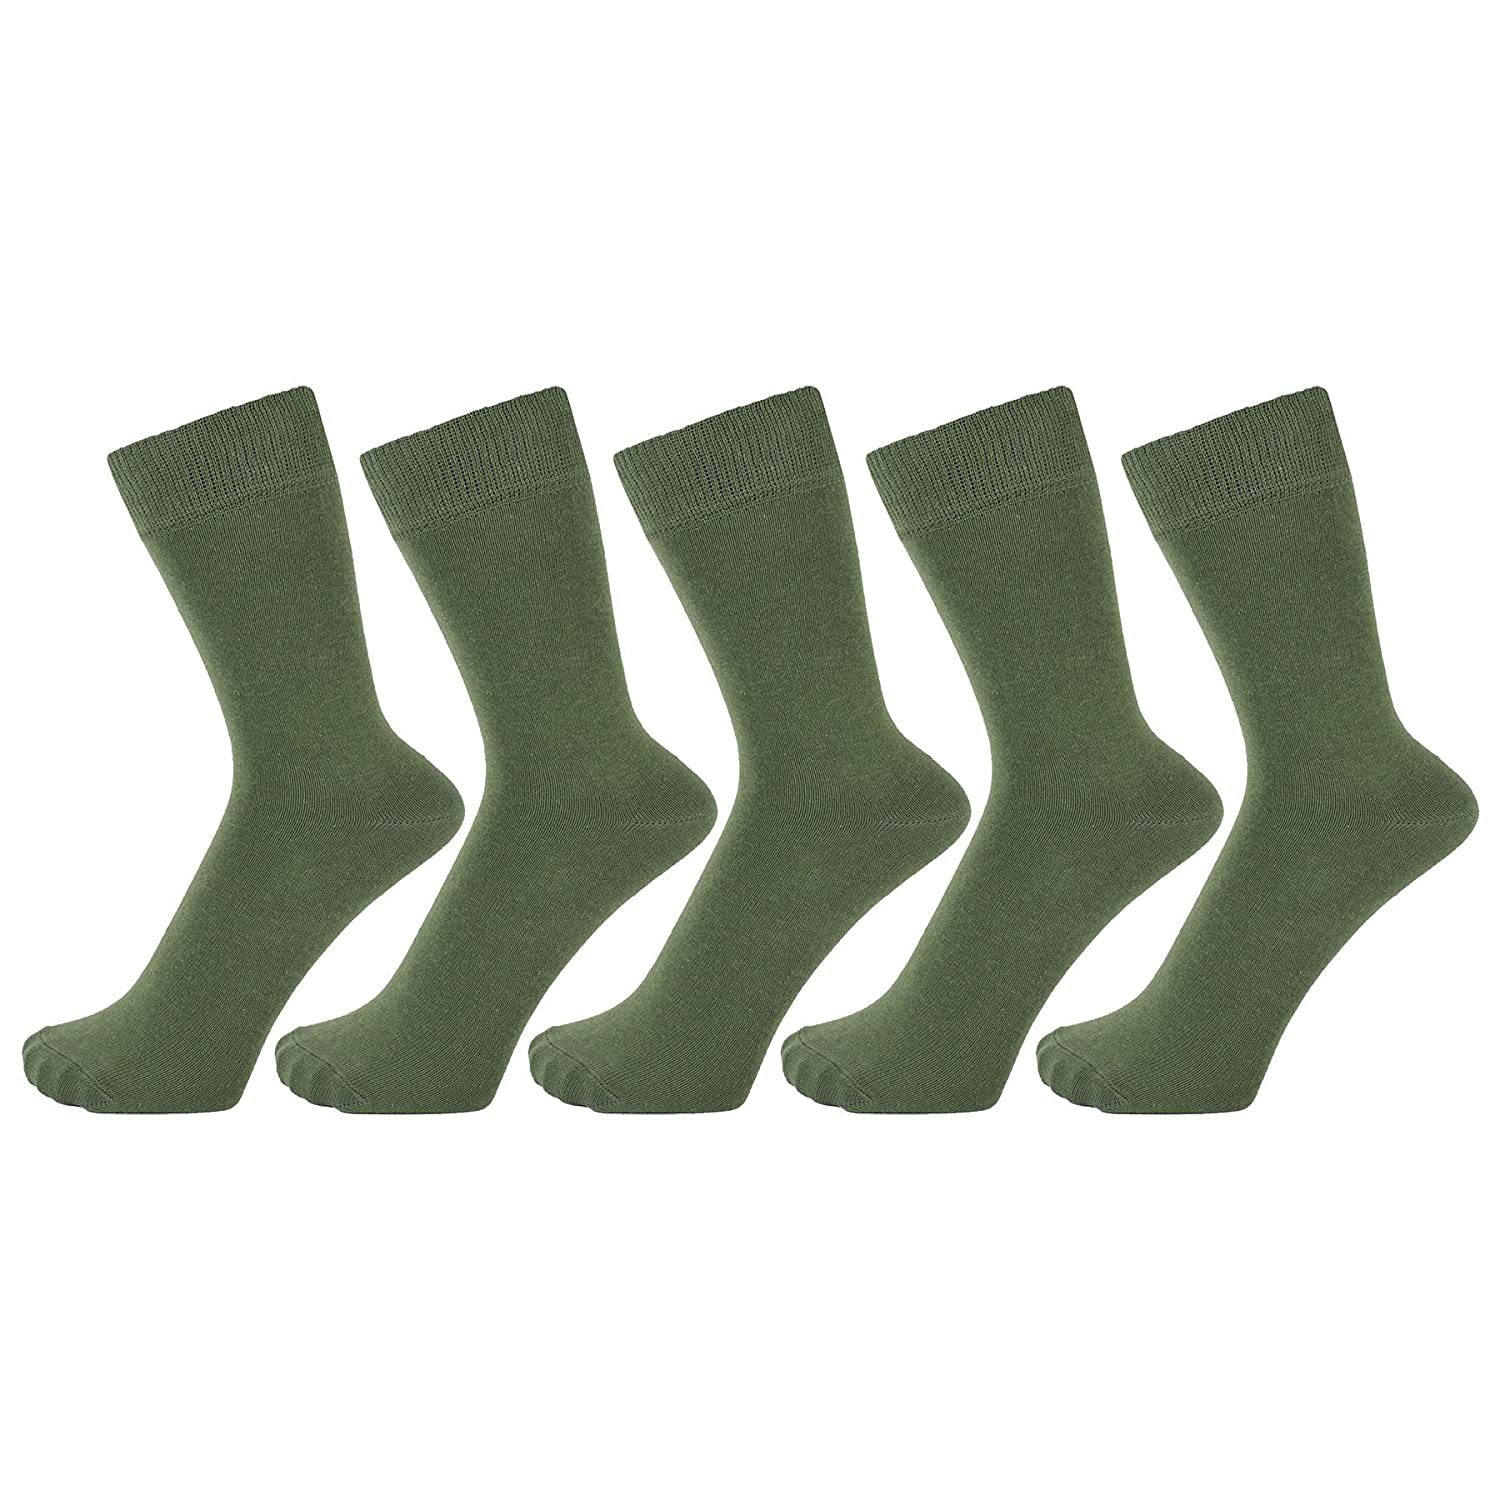 c4c5abd033c2 Our superior quality vivid coloured unisex socks are made in Turkey with  highest quality combed Turkish cotton which is both comfortable and durable.